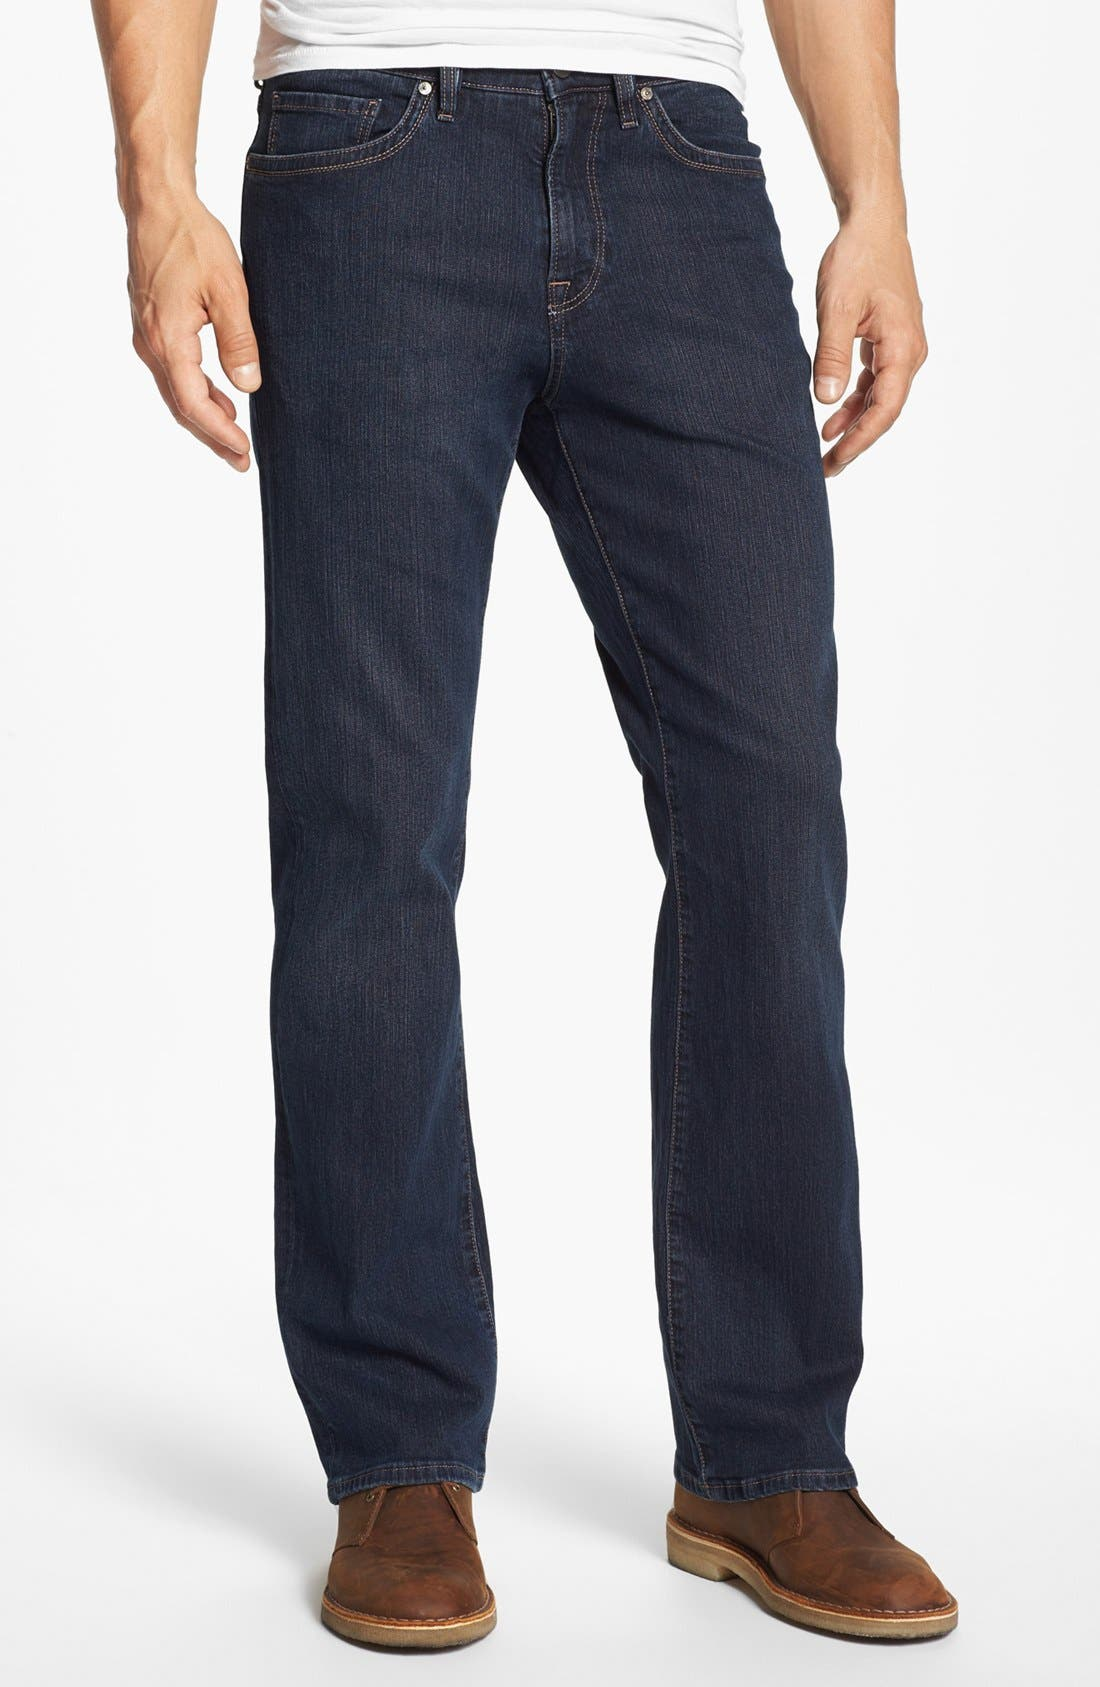 Main Image - 34 Heritage Charisma Relaxed Fit Jeans (Dark Comfort) (Regular & Tall)